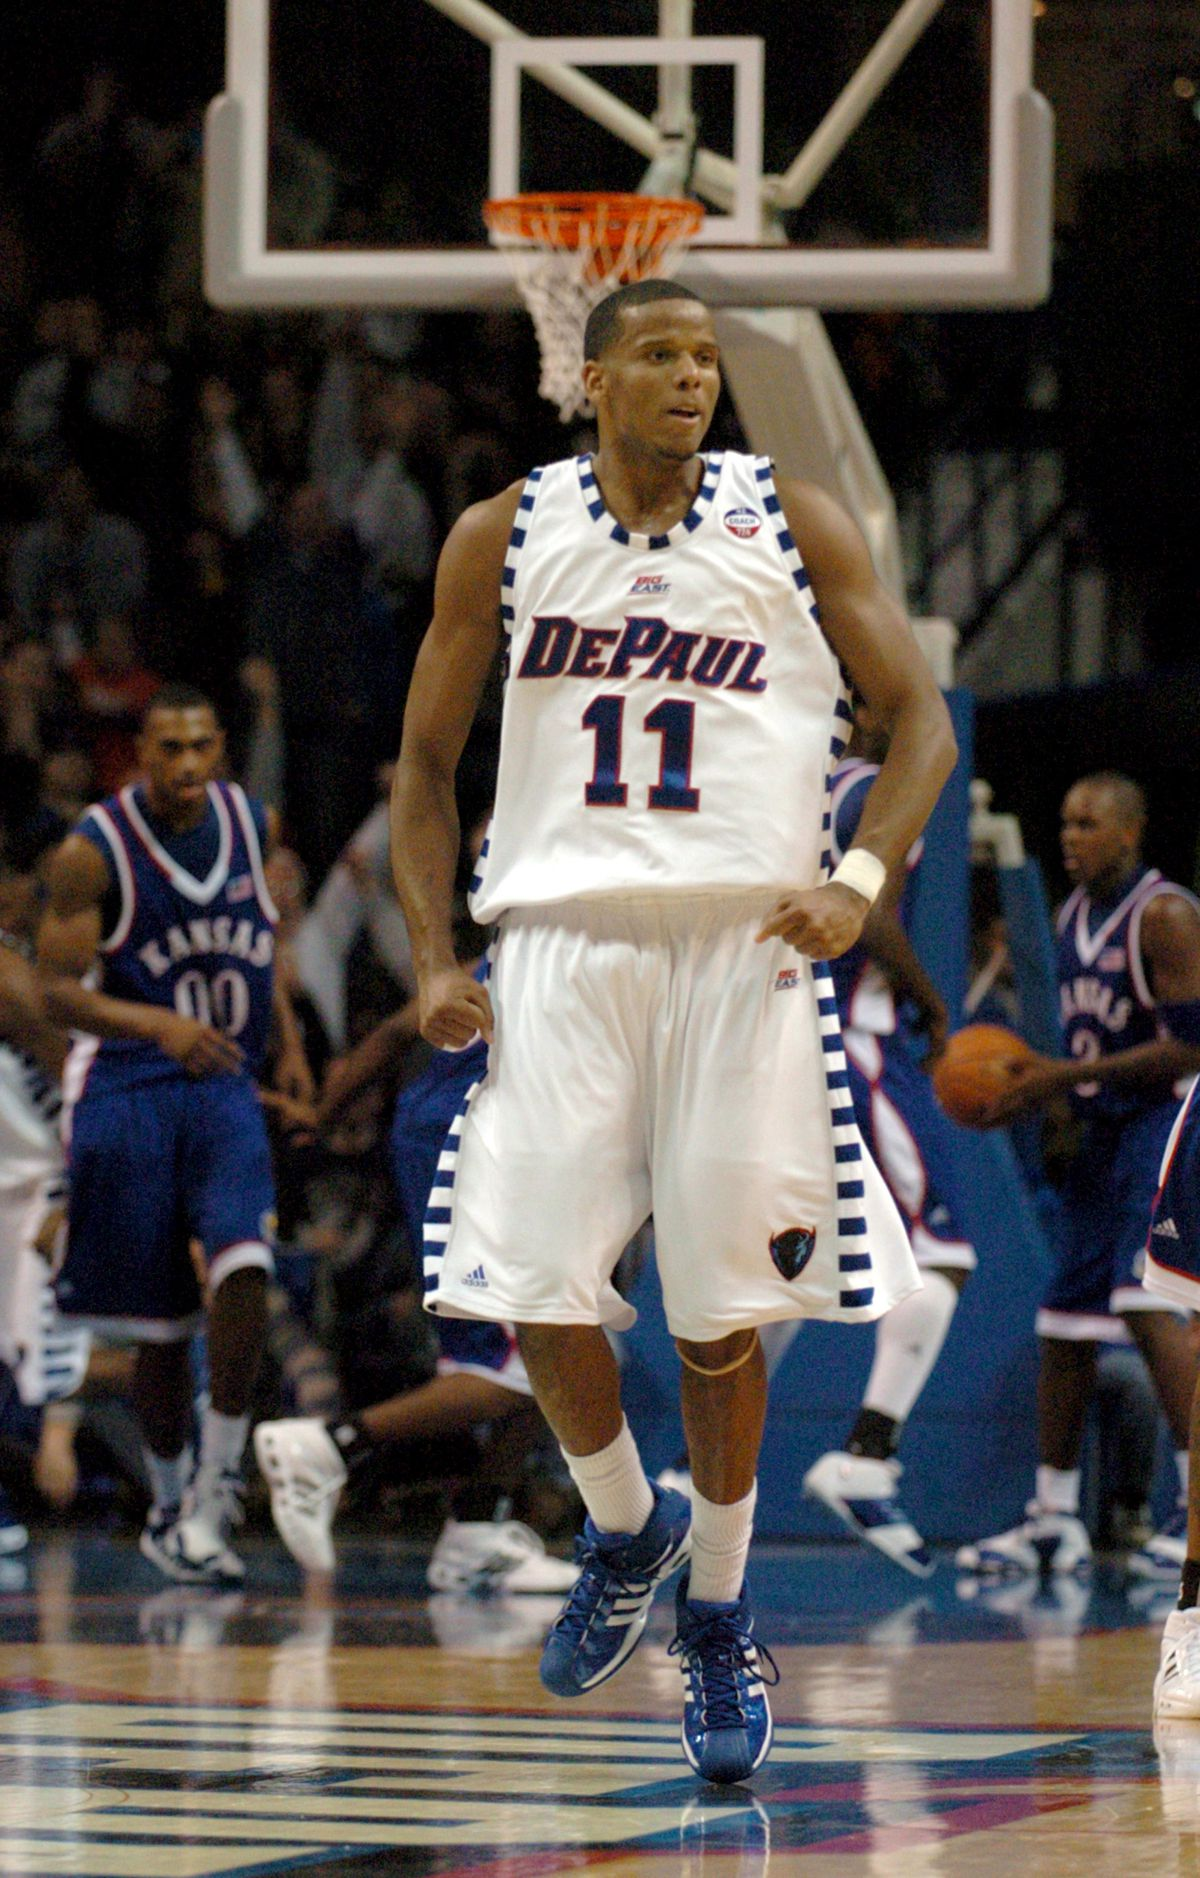 DePaul's Sammy Mejia (11) reacts after tying the game in the